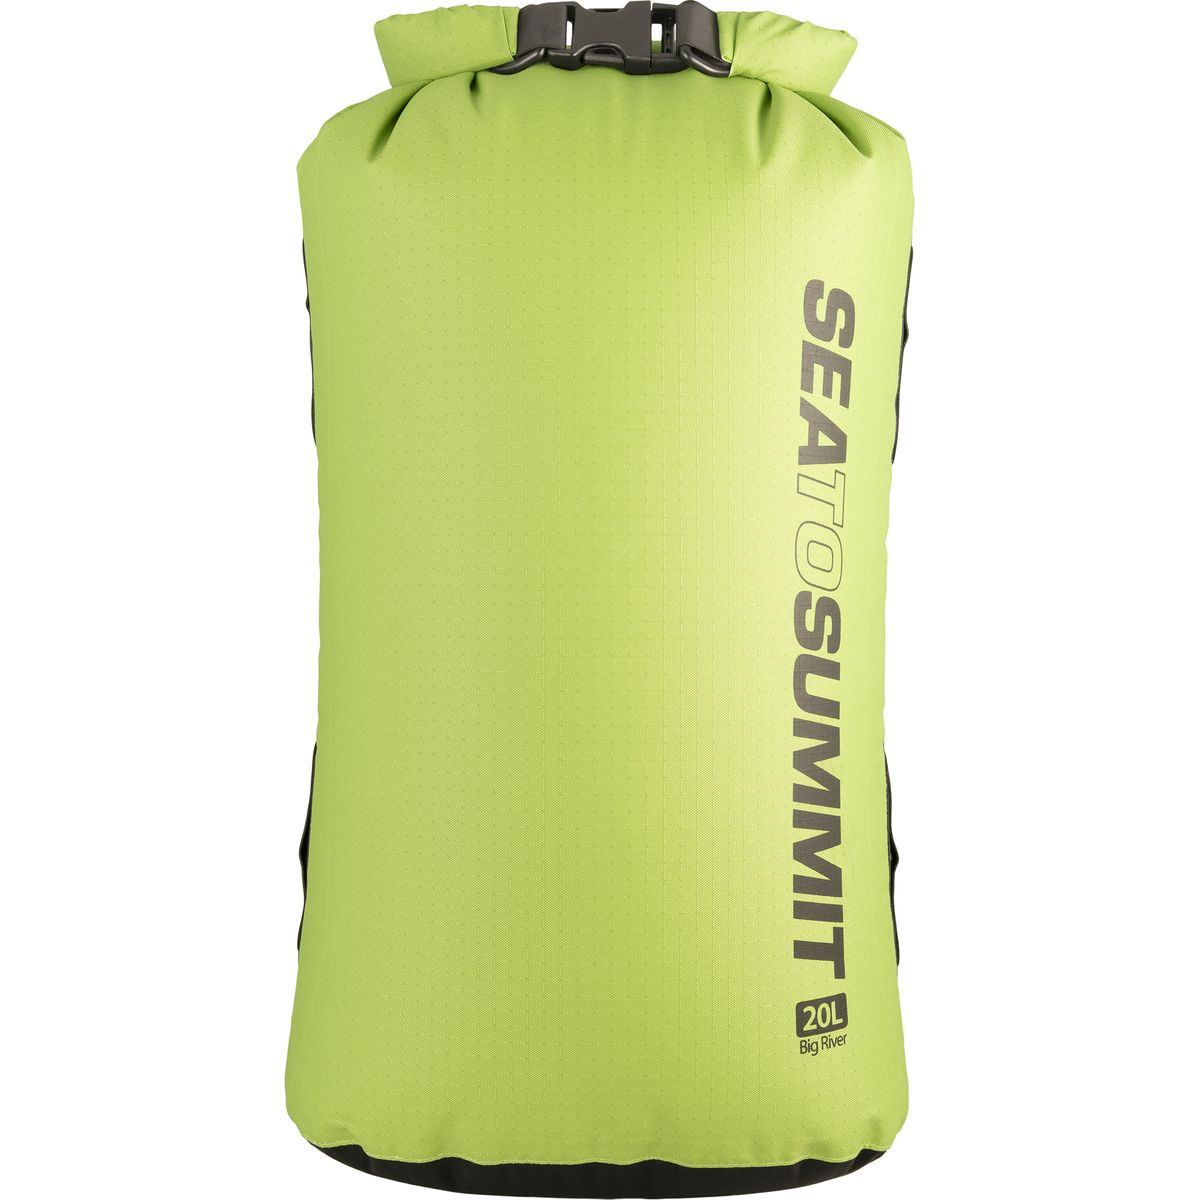 Sea to Summit Big River Dry Sack